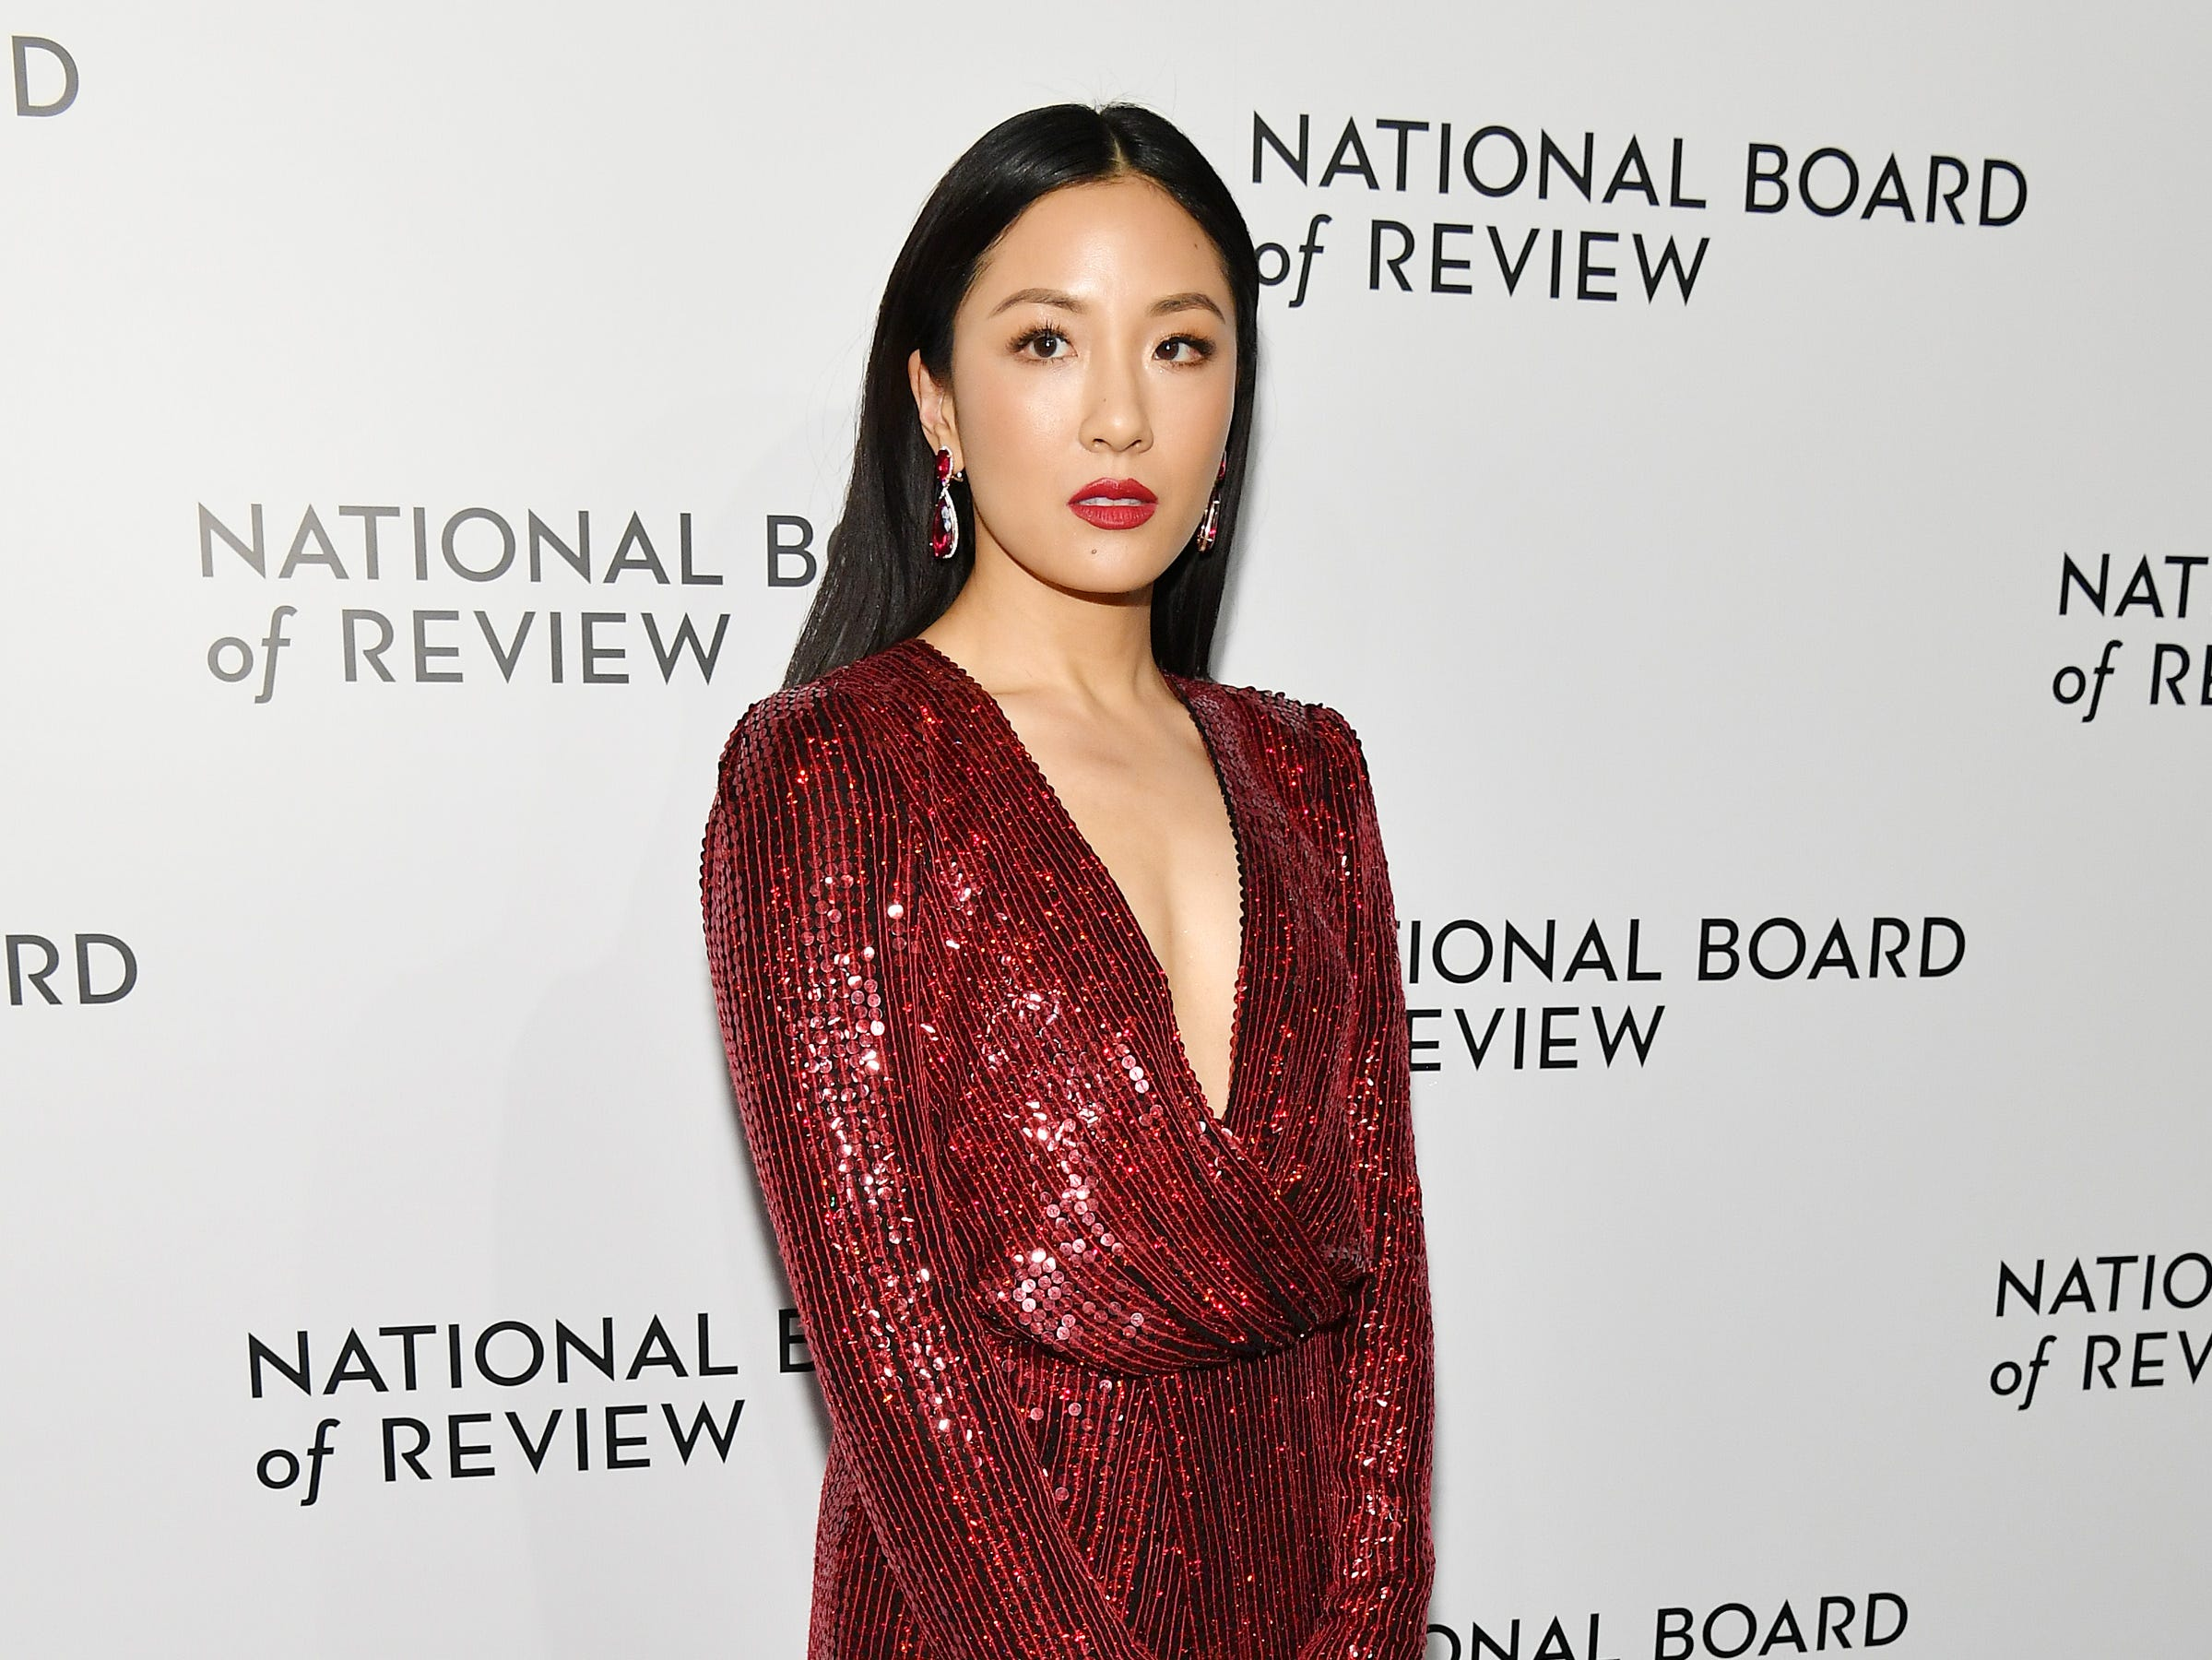 NEW YORK, NY - JANUARY 08: Constance Wu attends The National Board of Review Annual Awards Gala at Cipriani 42nd Street on January 8, 2019 in New York City.  (Photo by Dia Dipasupil/Getty Images for National Board of Review) ORG XMIT: 775259363 ORIG FILE ID: 1079453186